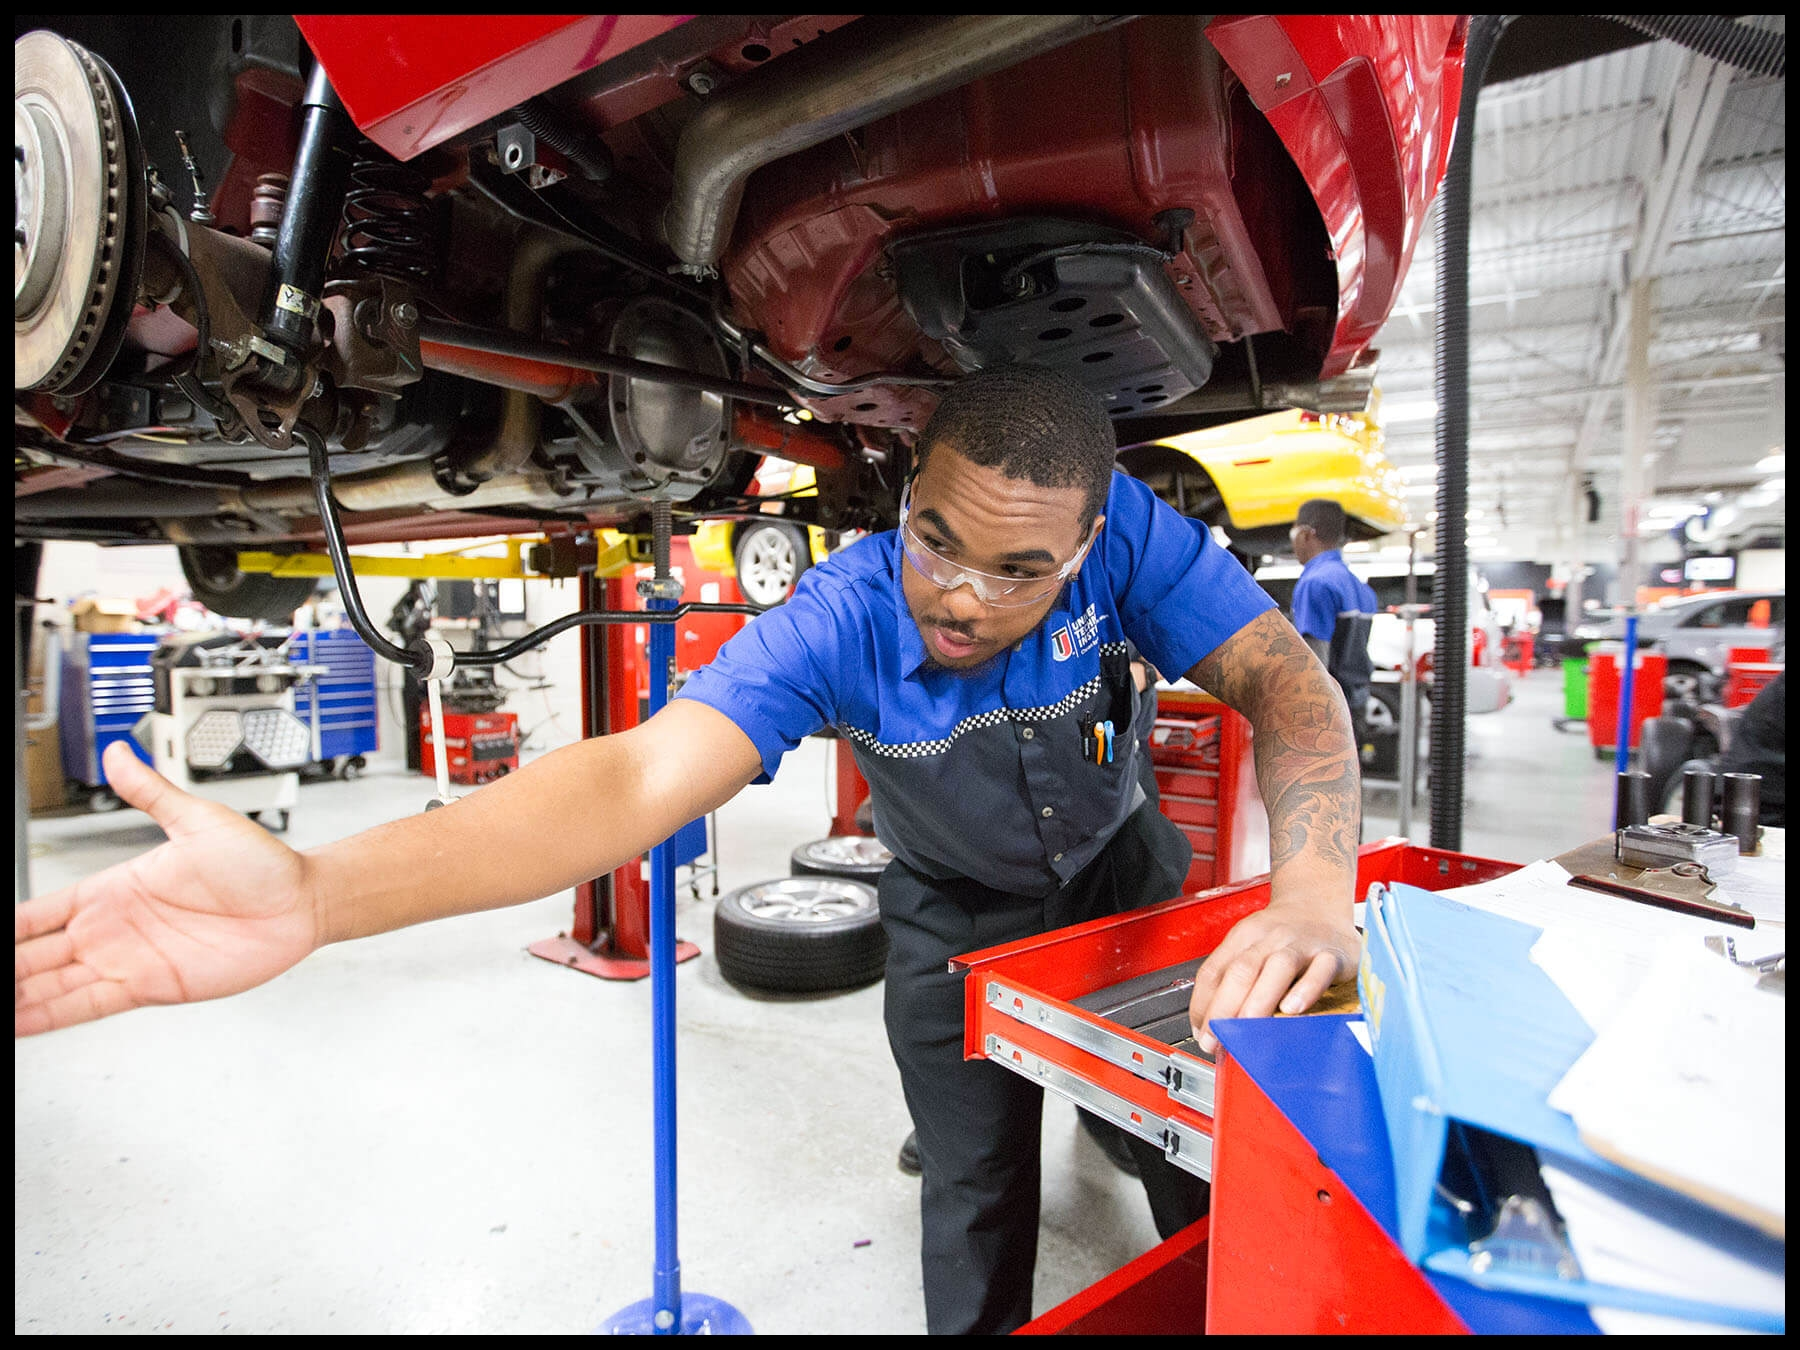 UTI student working underneath a car in the auto lab